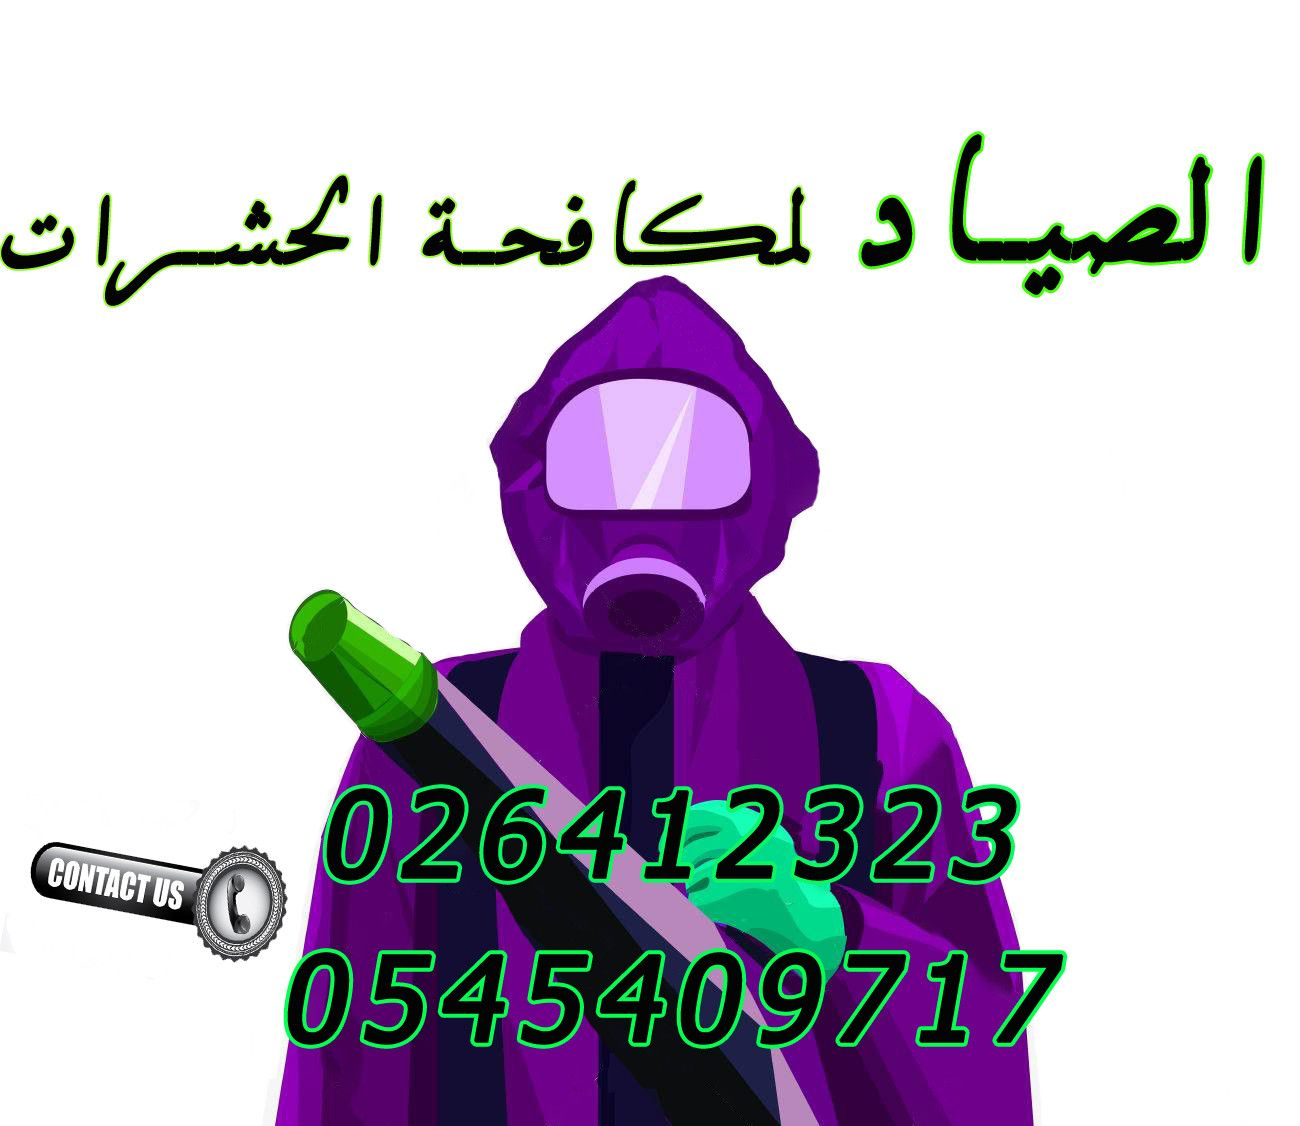 Al Sayyad Pest Control&cleaning Services 2